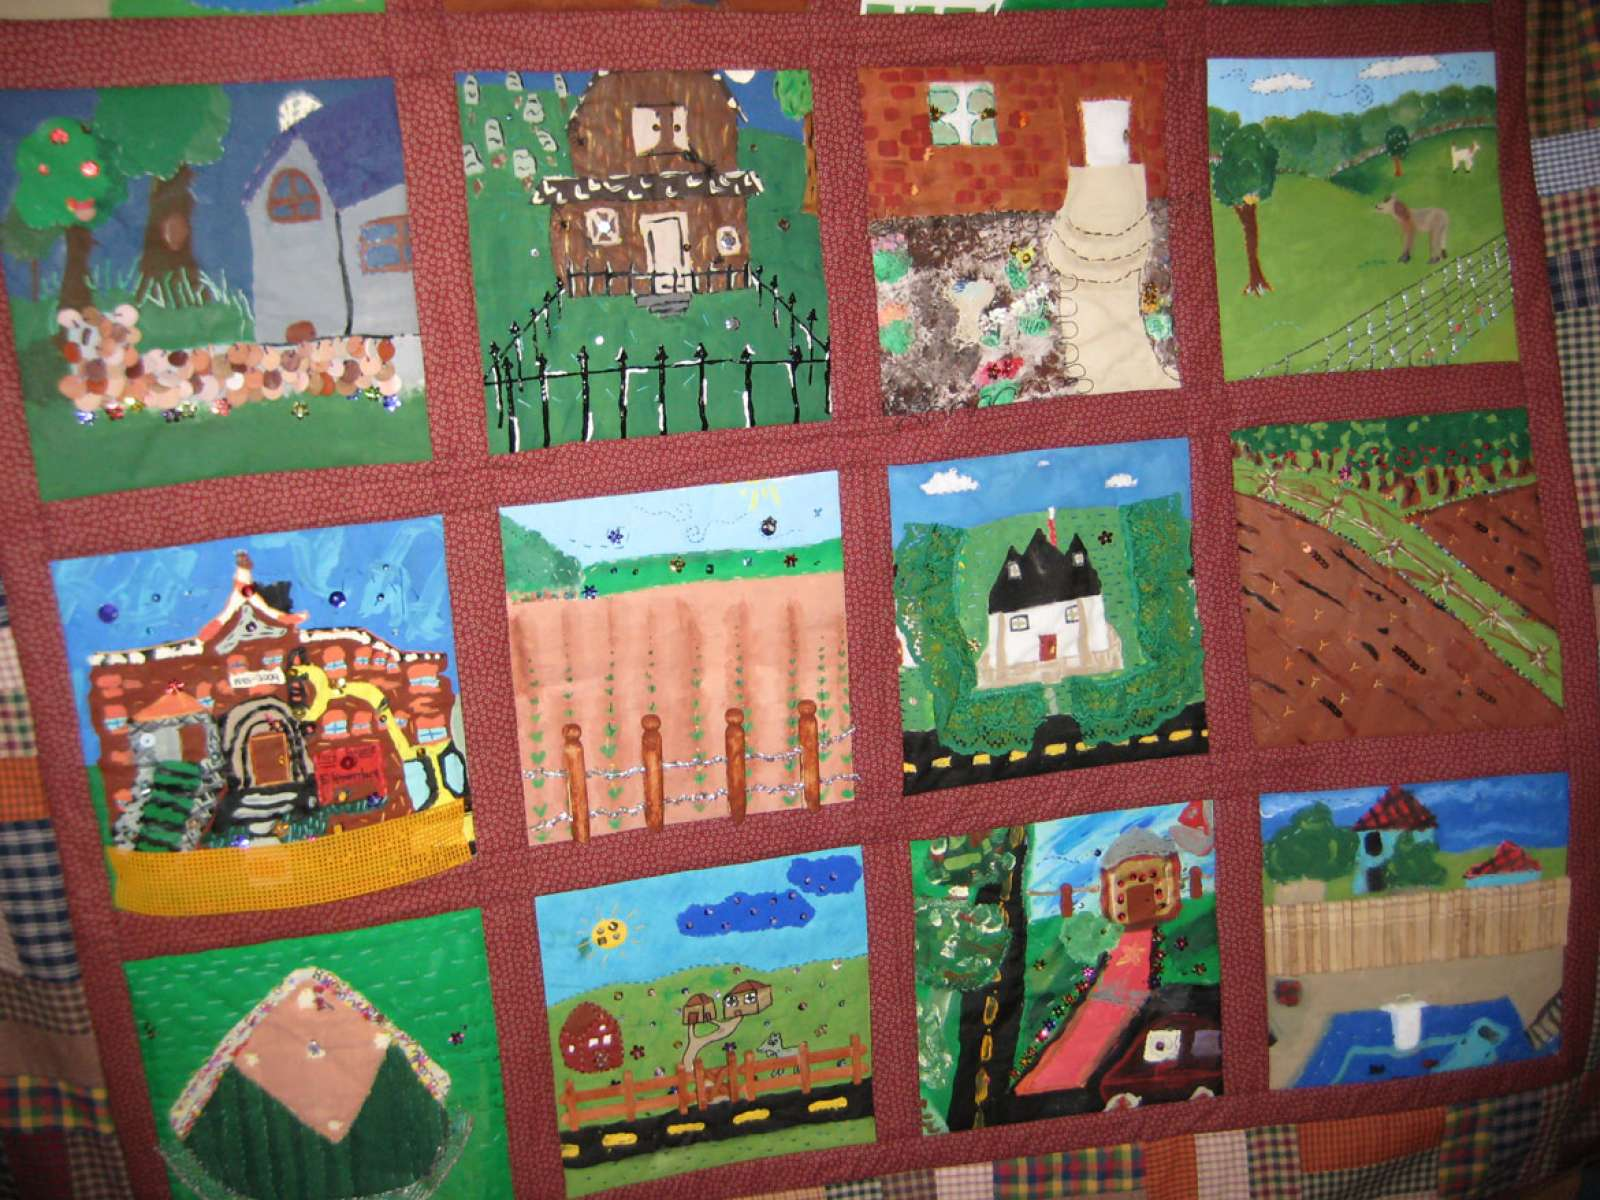 Between Fences Sidney 2009 Sidney BF 3rd graders quilt